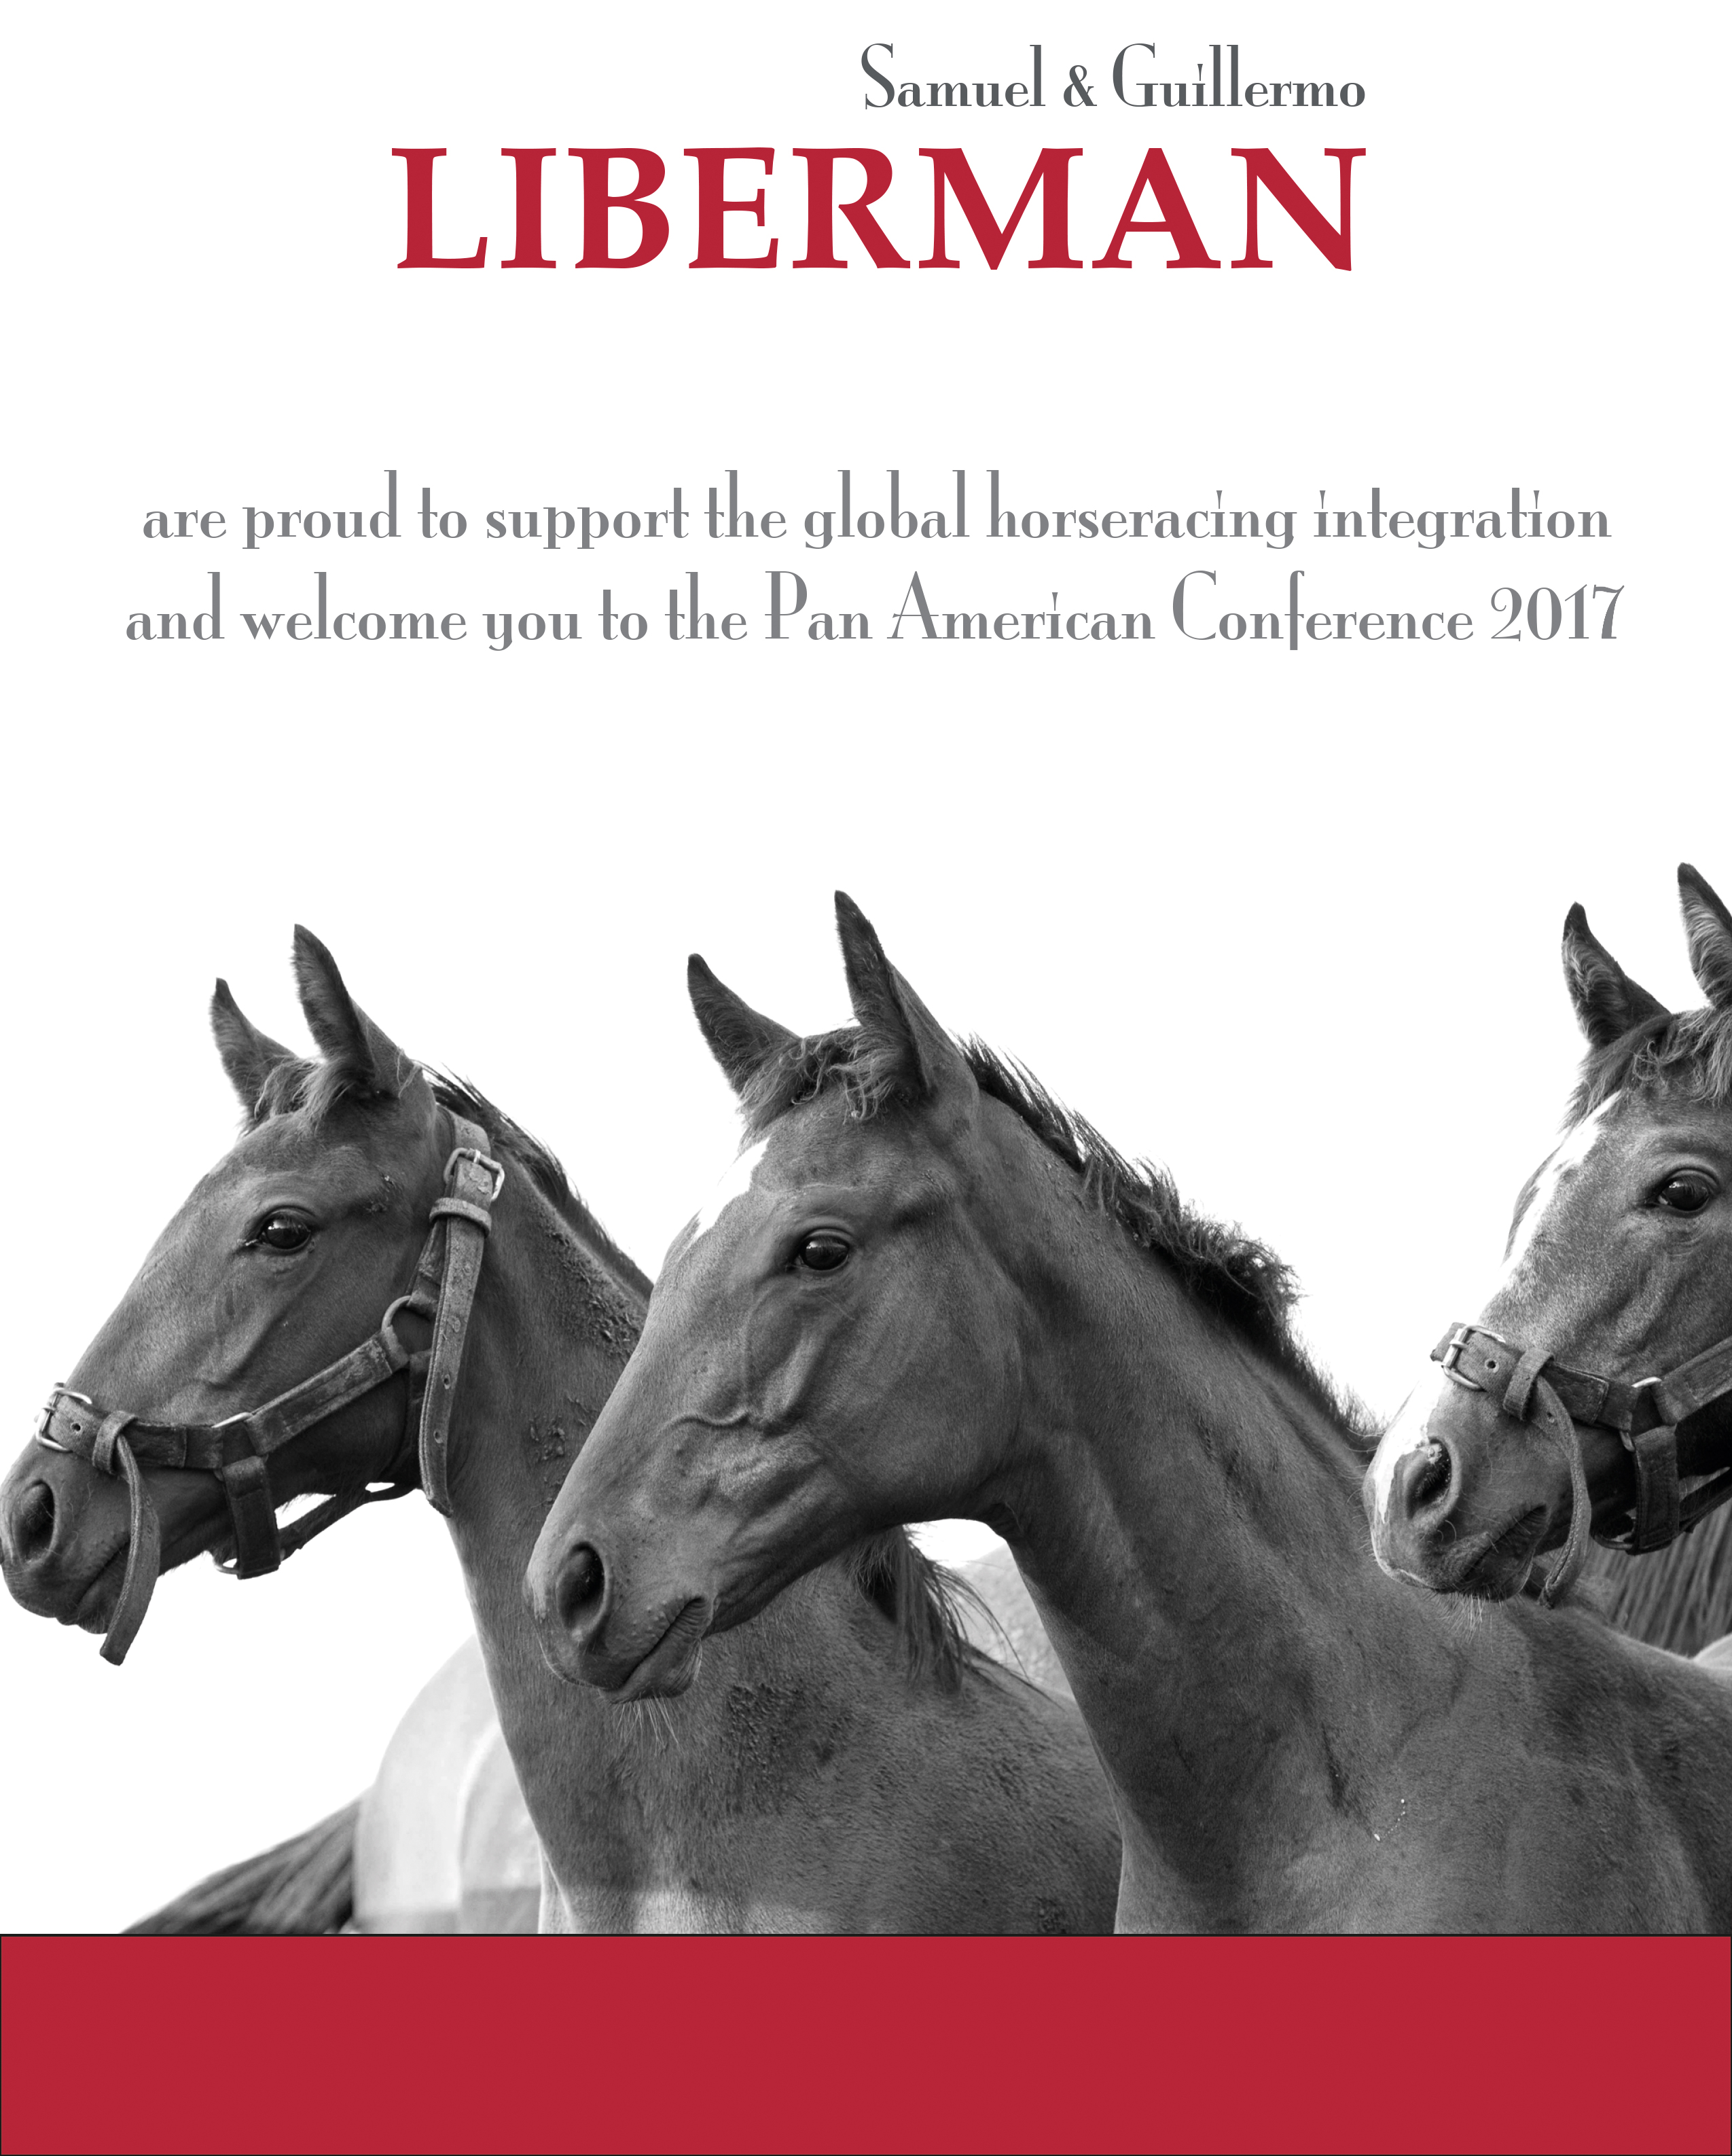 LIBERMAN WELCOME PAGE